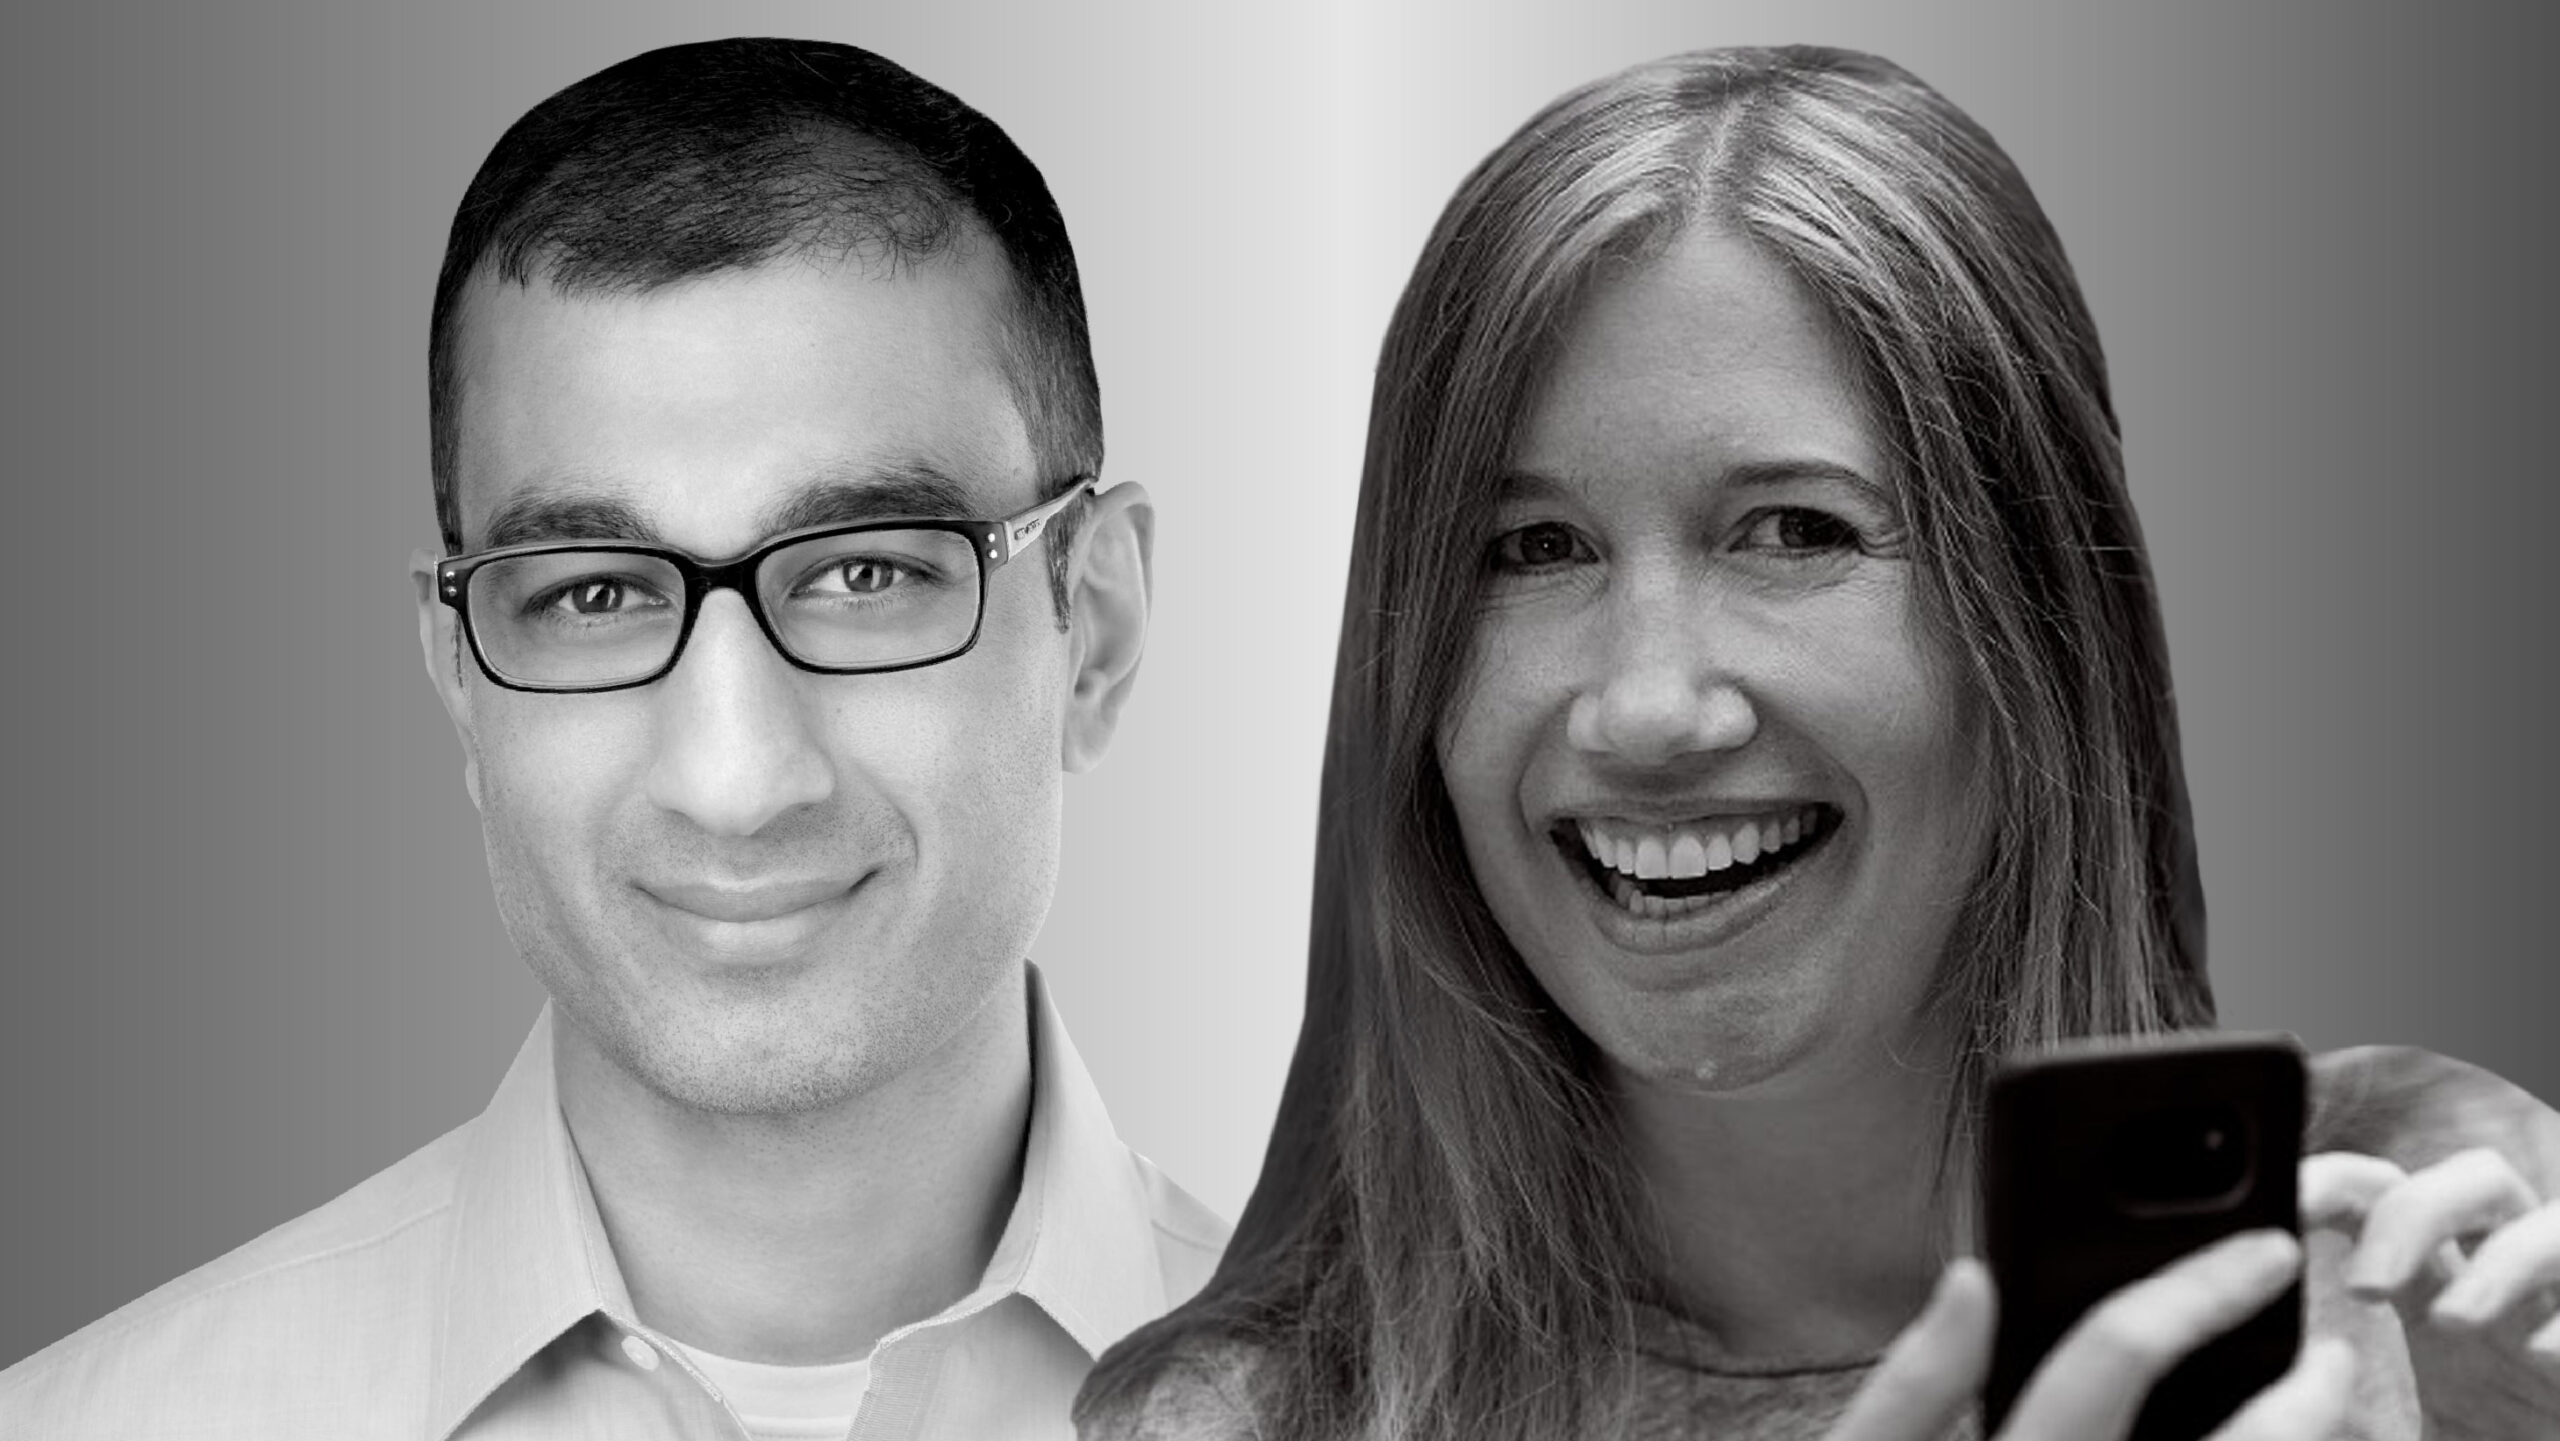 Portraits of Microsoft researchers Sid Suri and Jaime Teevan photographed in black and white. Both smile and look forward. Teevan, on the right, is holding a cell phone in the lower right of the frame.